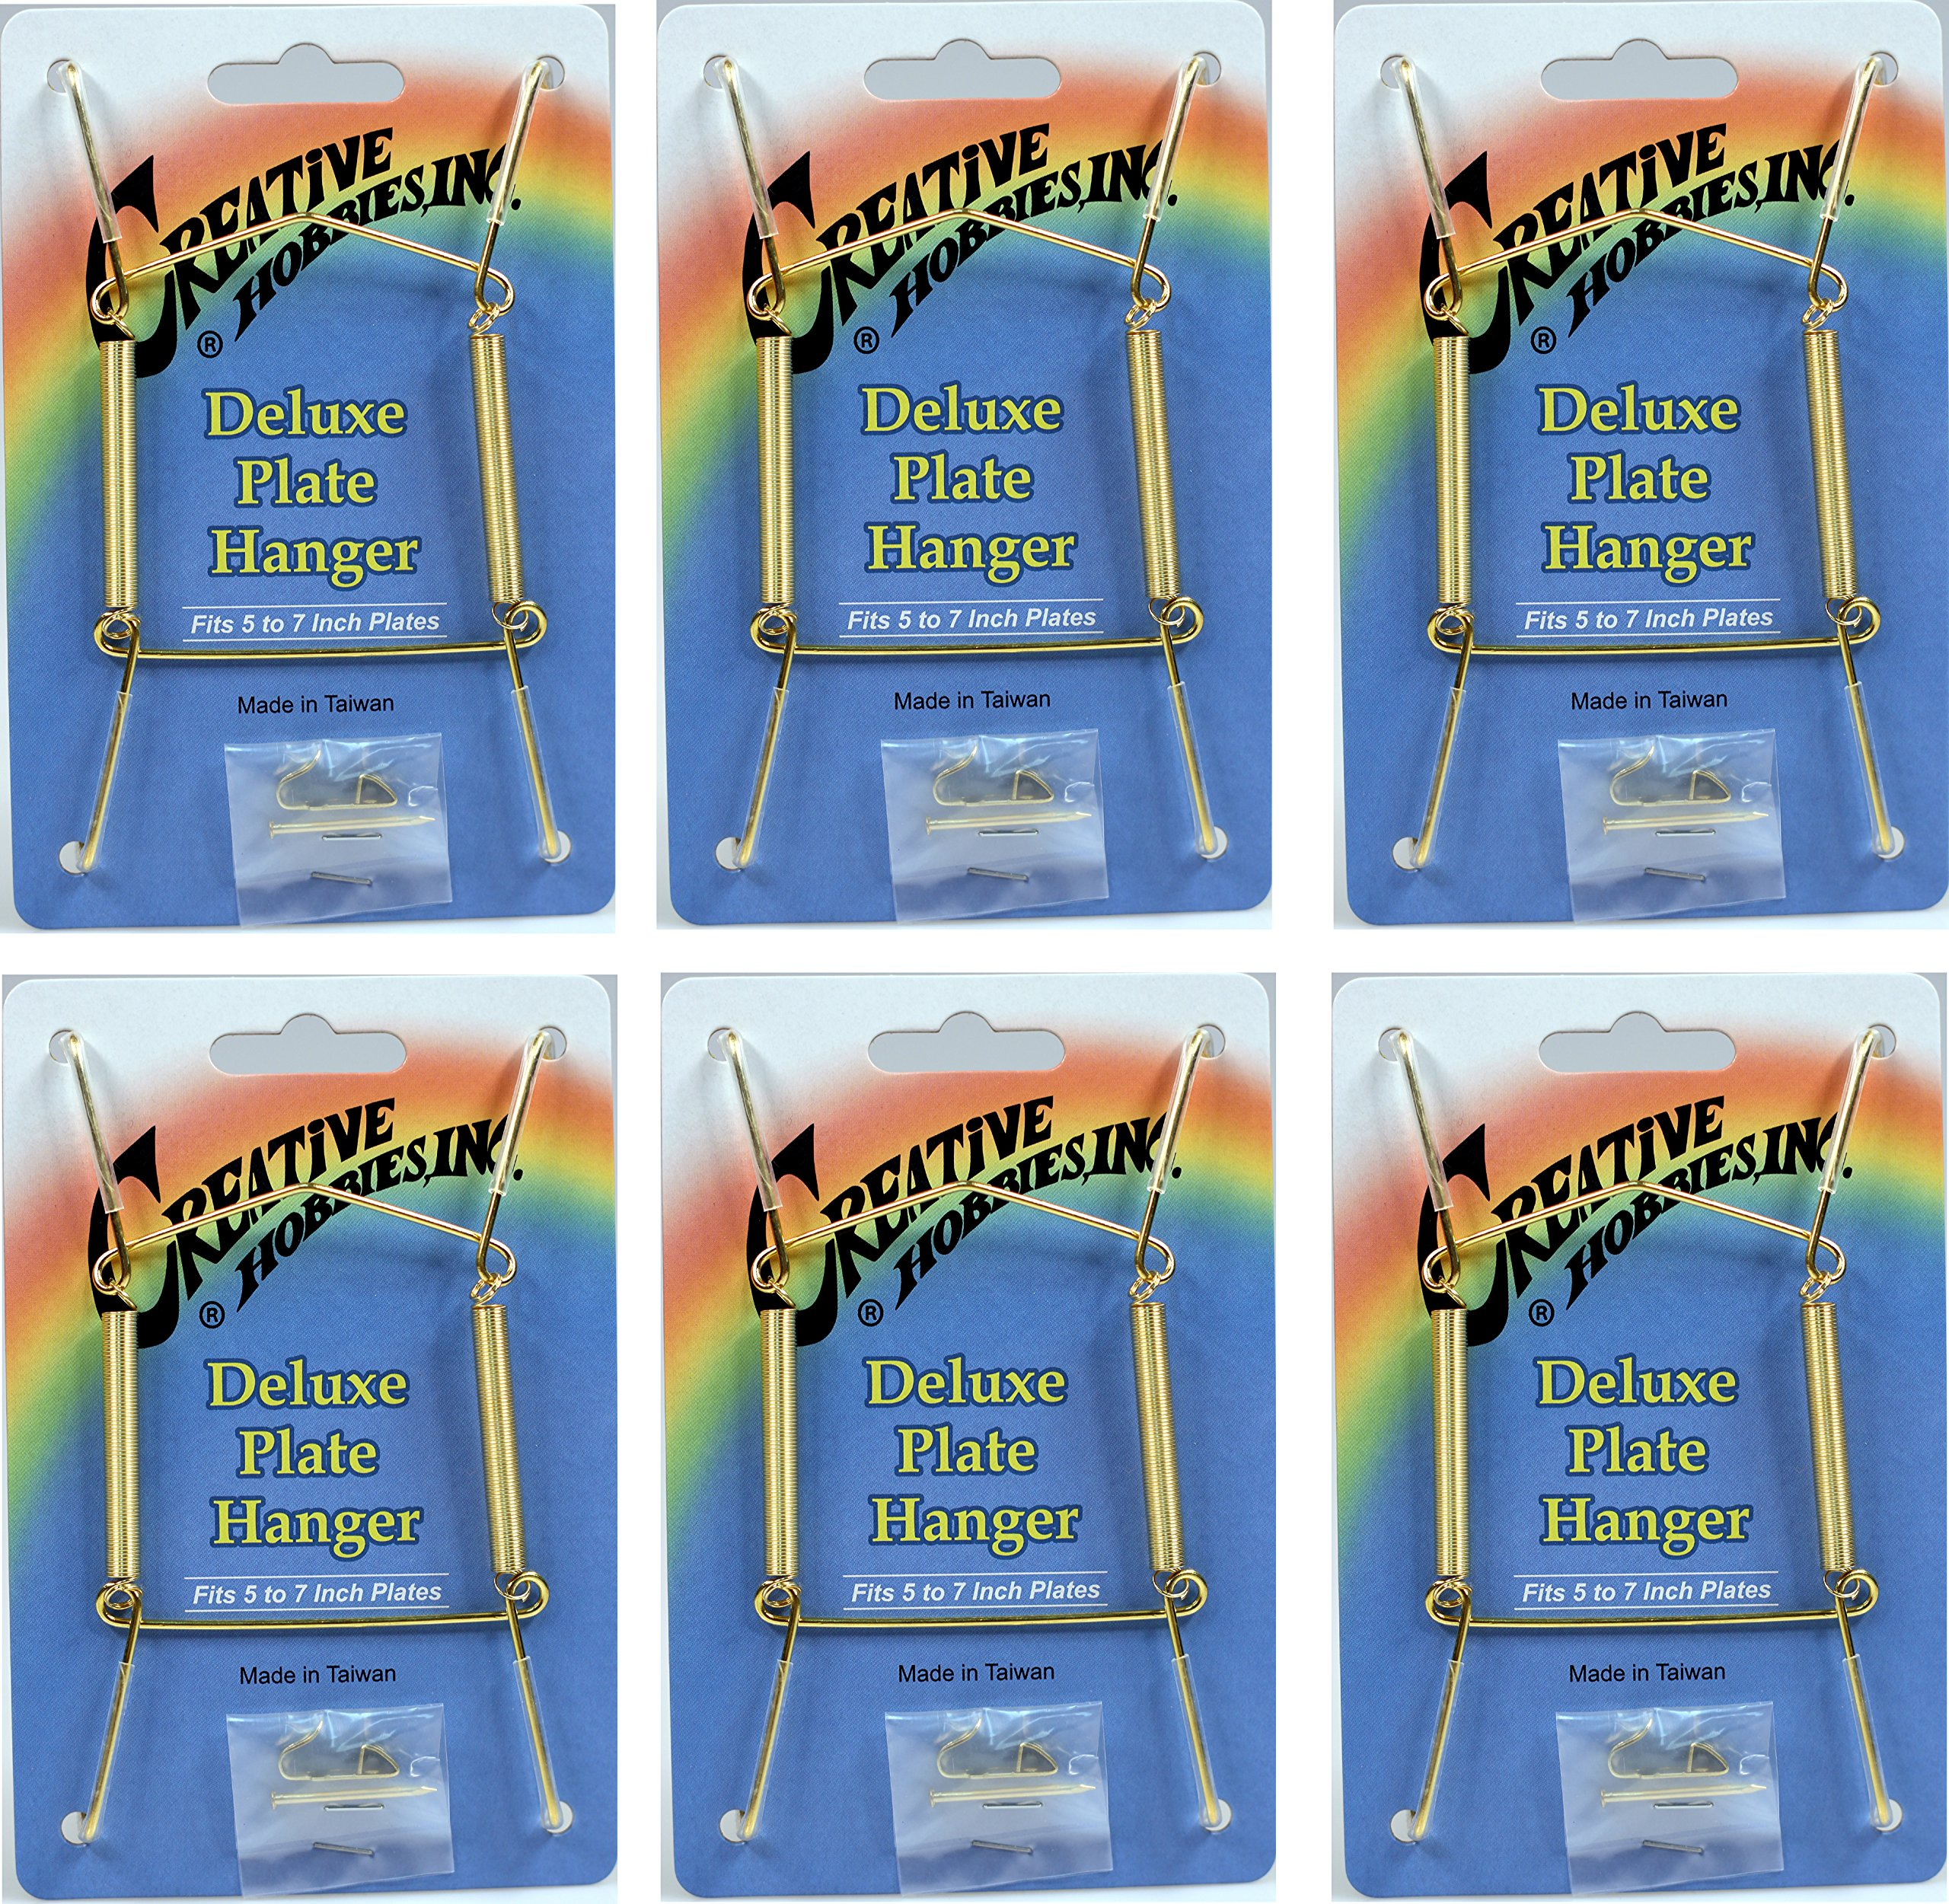 Creative Hobbies Deluxe Plate Display Hangers, Spring Style- Assembled & Ready to Use -Hold 5 to 7 Inch Plates- Gold Wire Spring Type, Hanger Hooks & Nails Included -Pack of 6 Hangers by Creative Hobbies